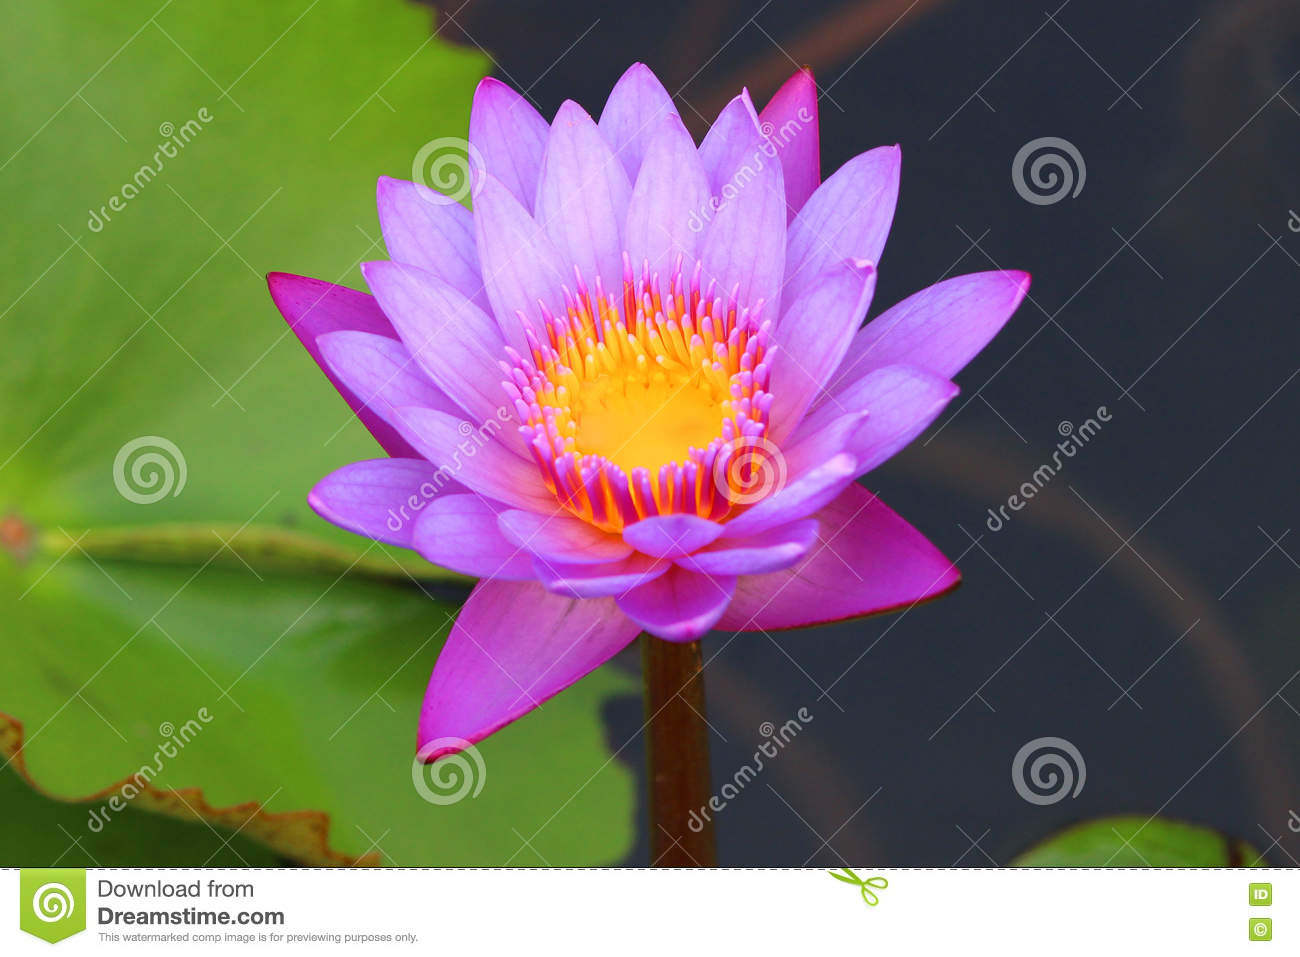 Lotus flower stock photo image of indian cases embedded 75237972 download lotus flower stock photo image of indian cases embedded 75237972 mightylinksfo